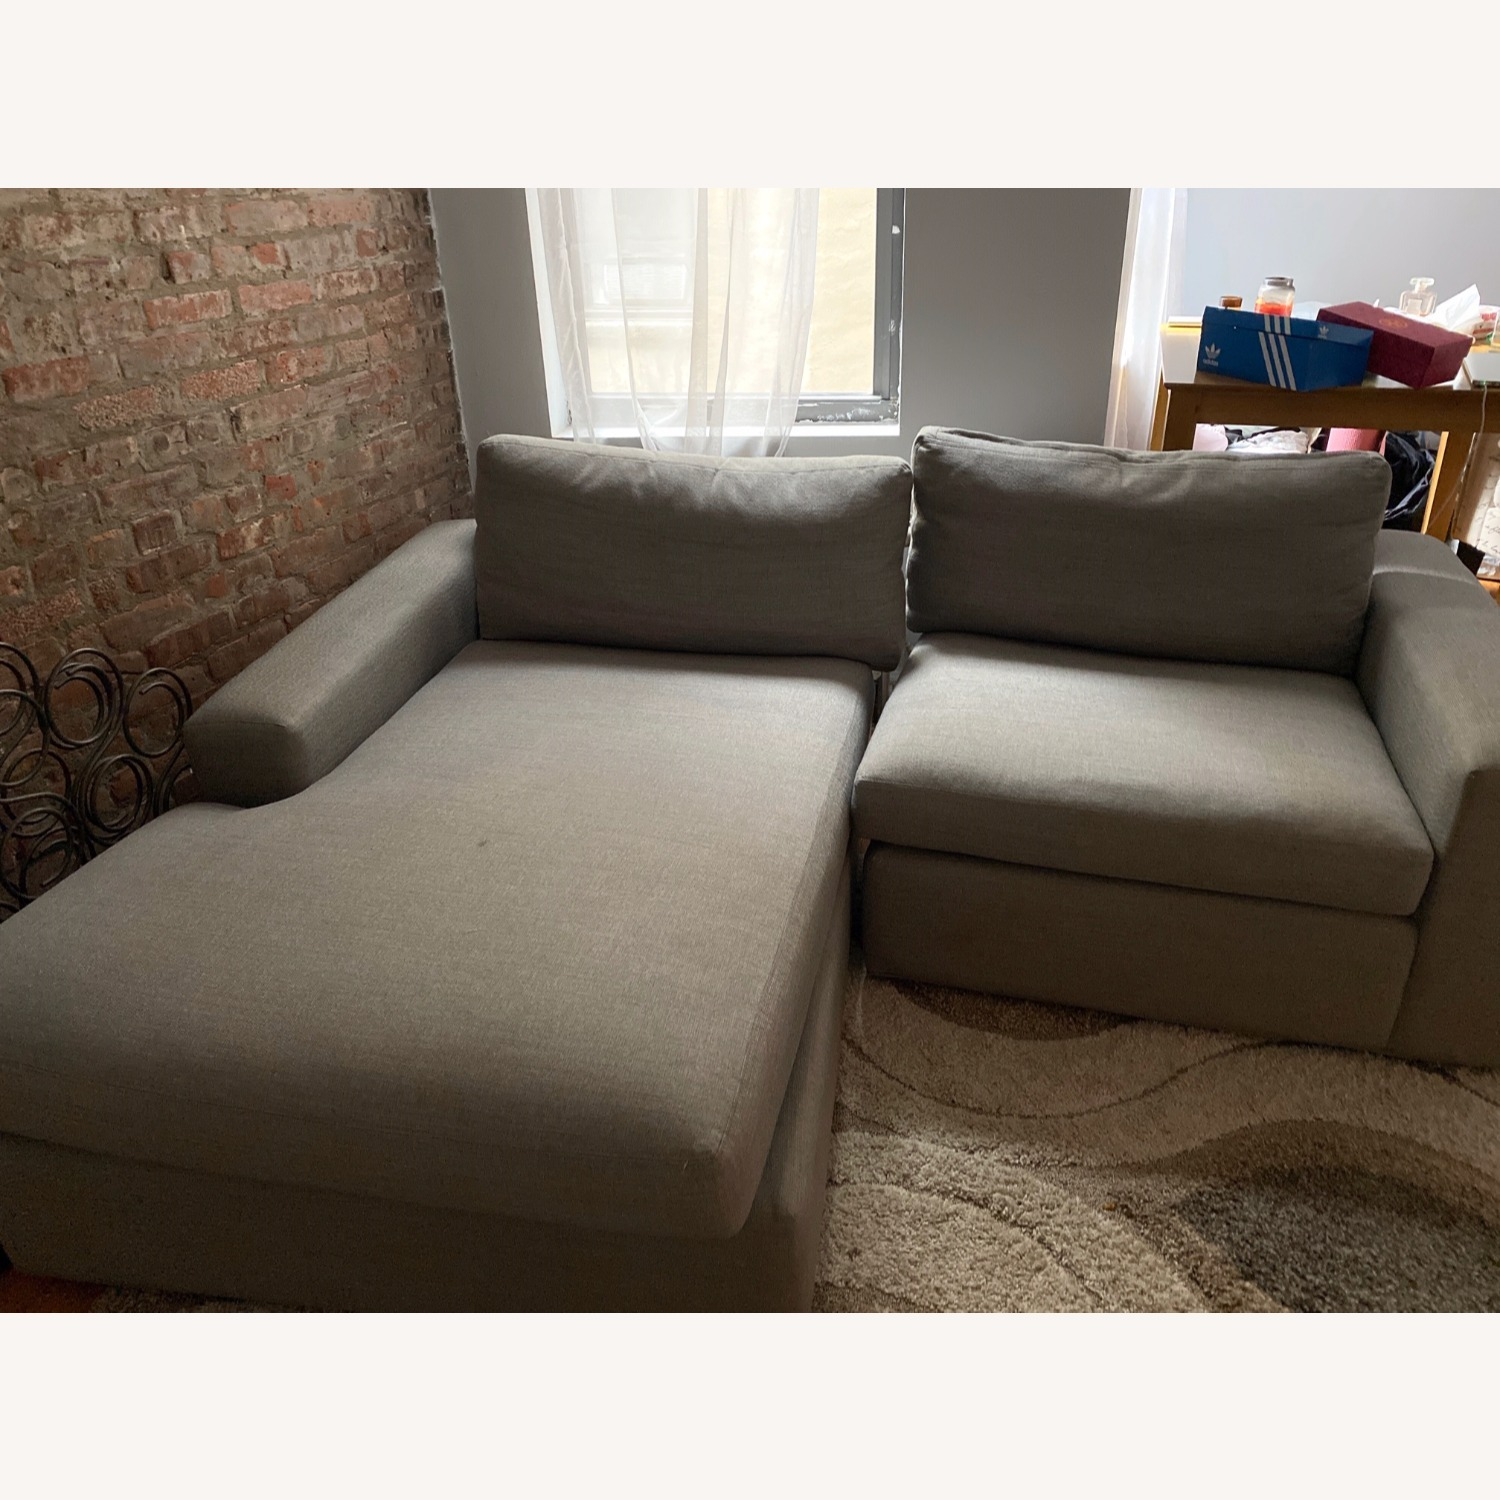 Room & Board Sectional Couch - image-1